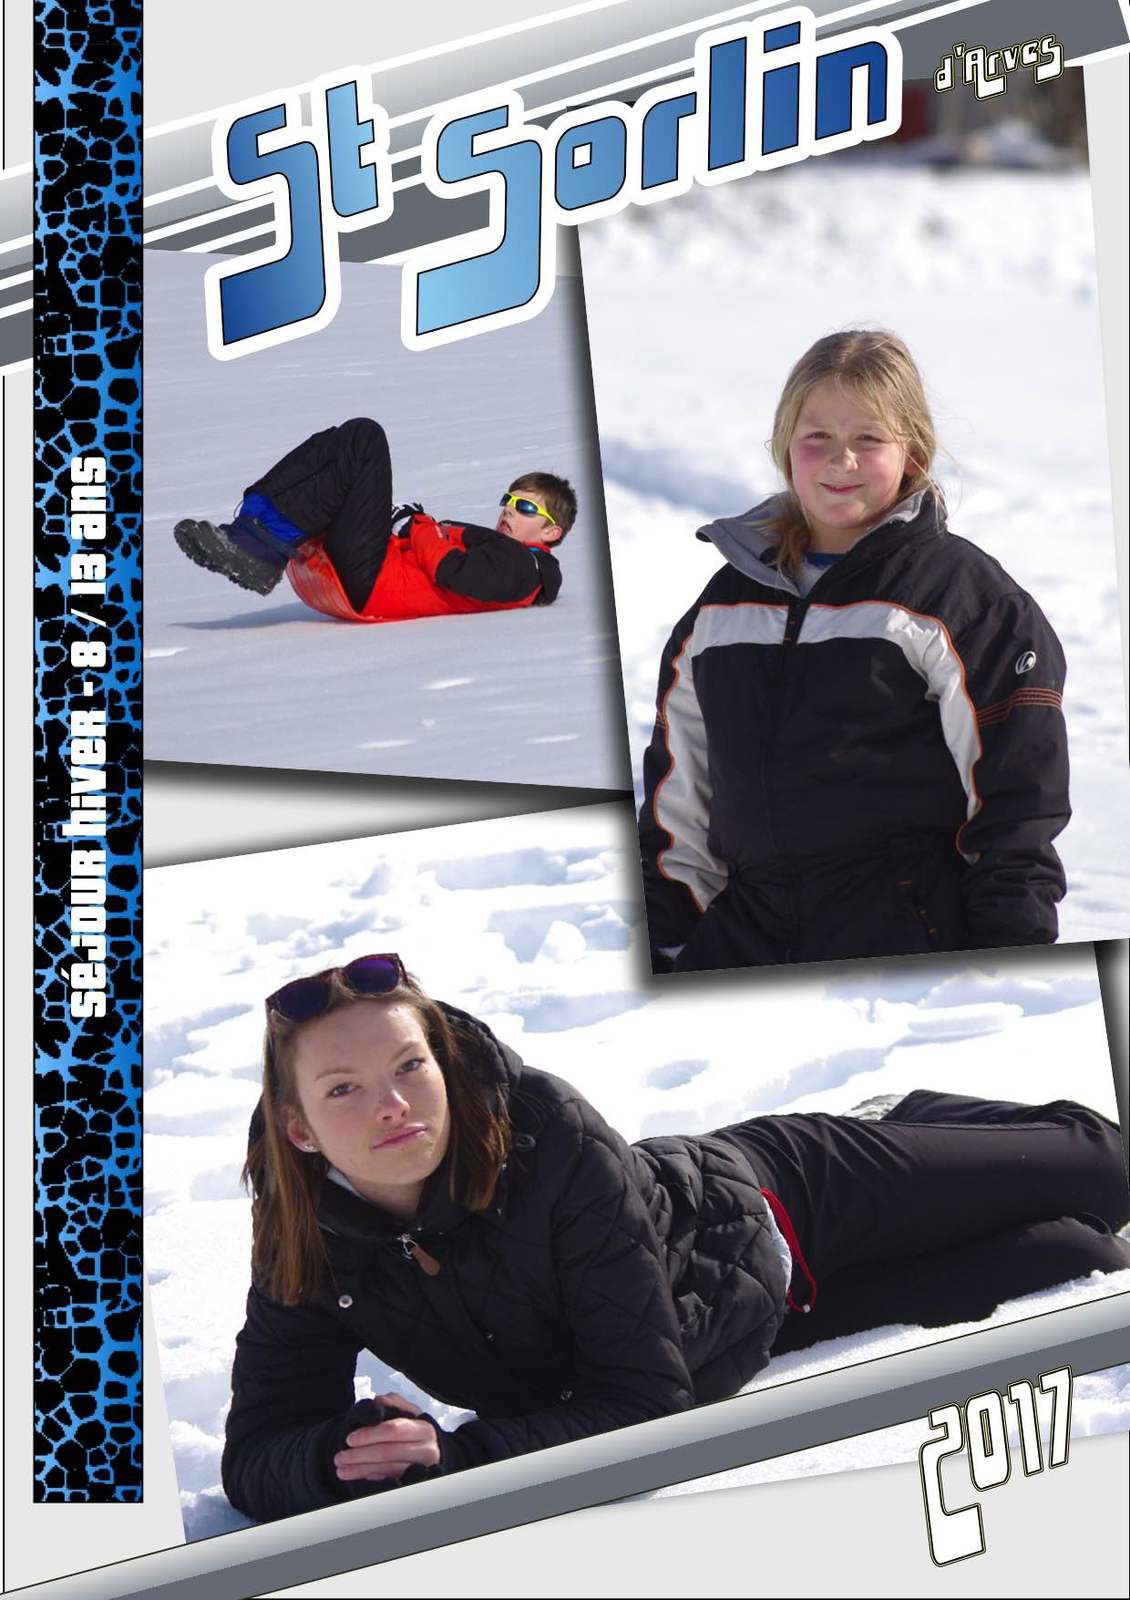 Luge and co